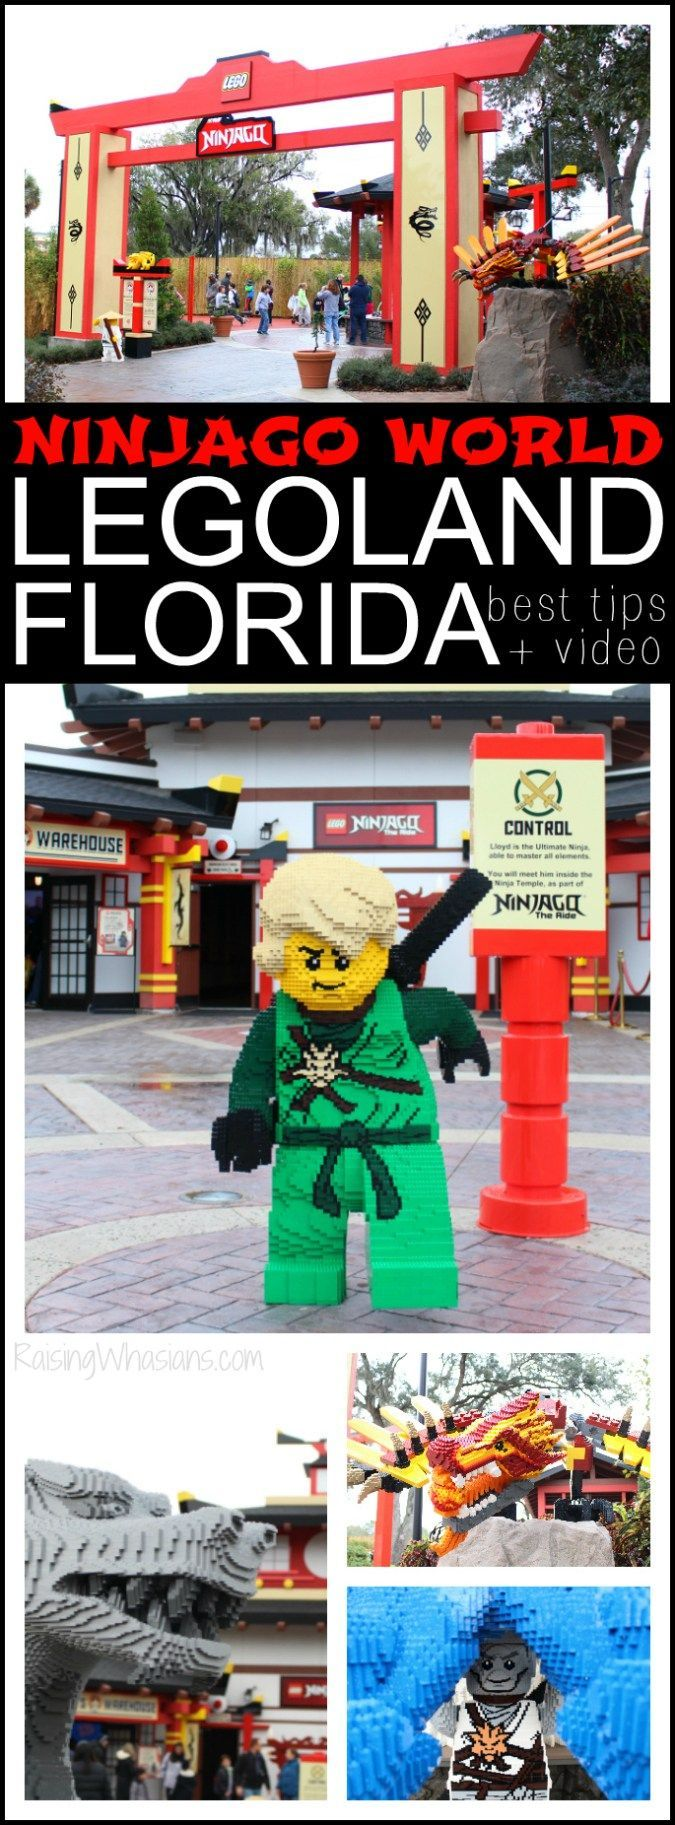 5 Tips for Exploring Ninjago World at LEGOLAND Florida with your family + Video Review - Raising Whasians (AD)